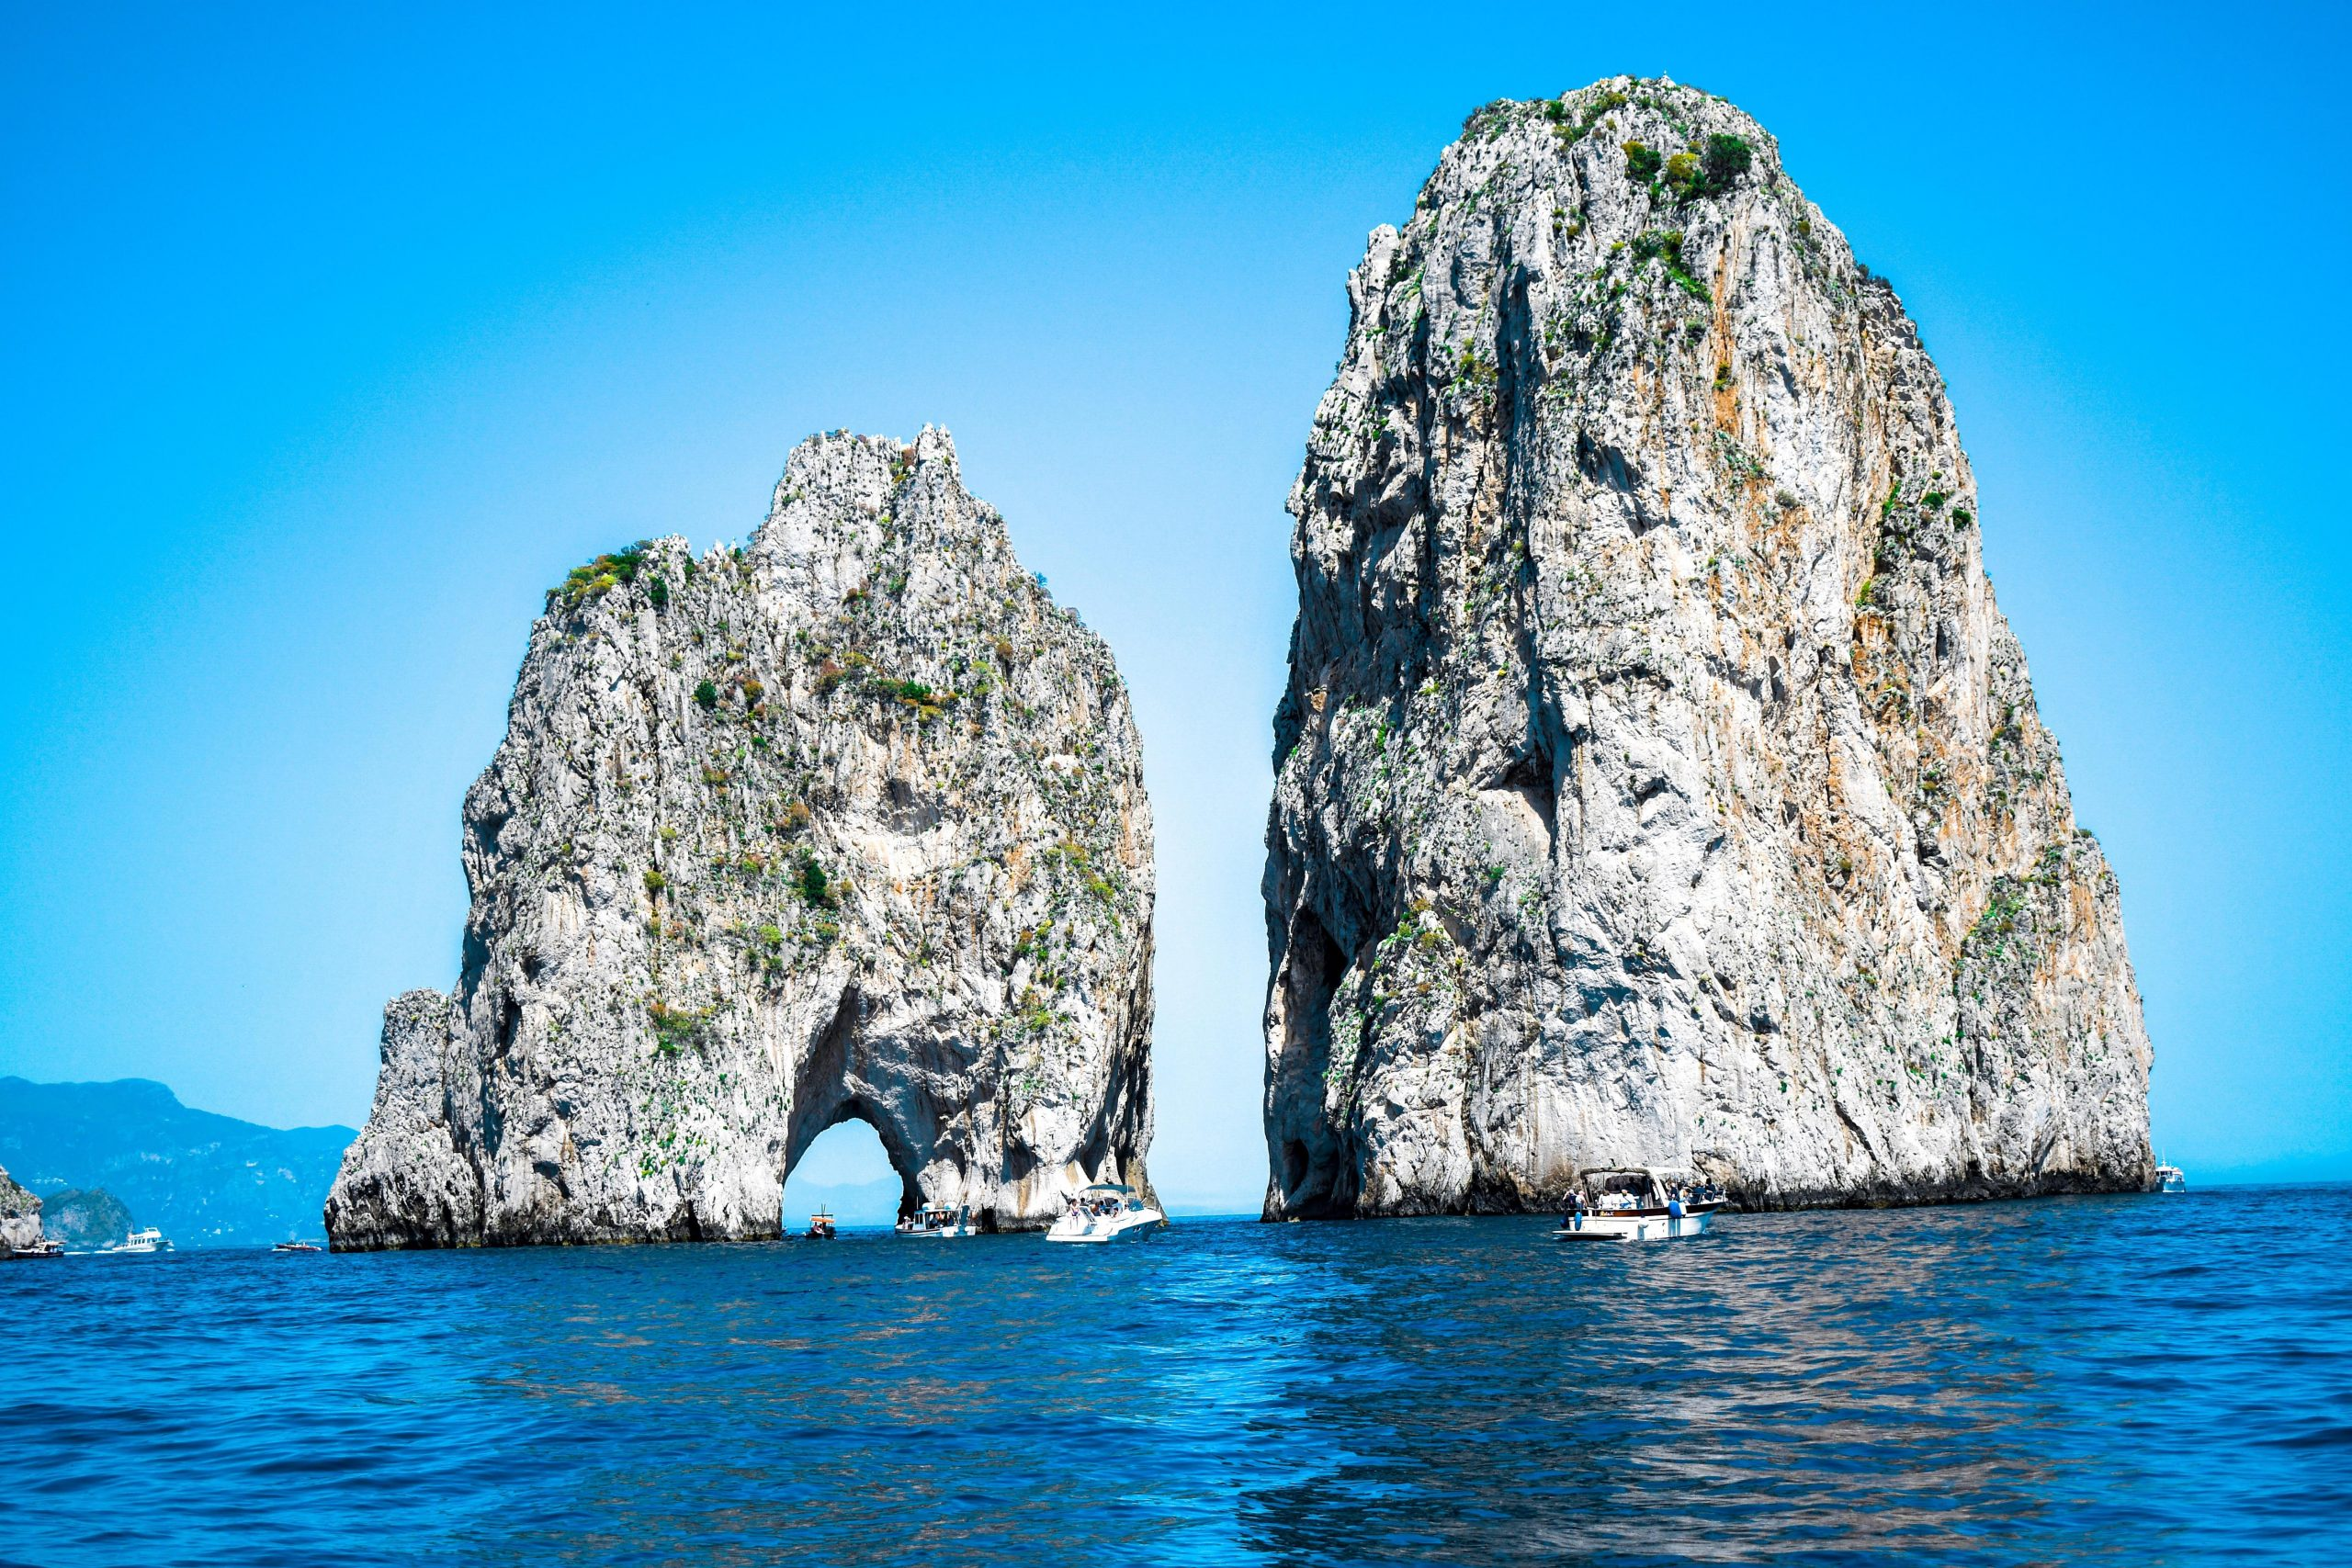 Capri boat tour from Sorrento - Faraglioni rocks